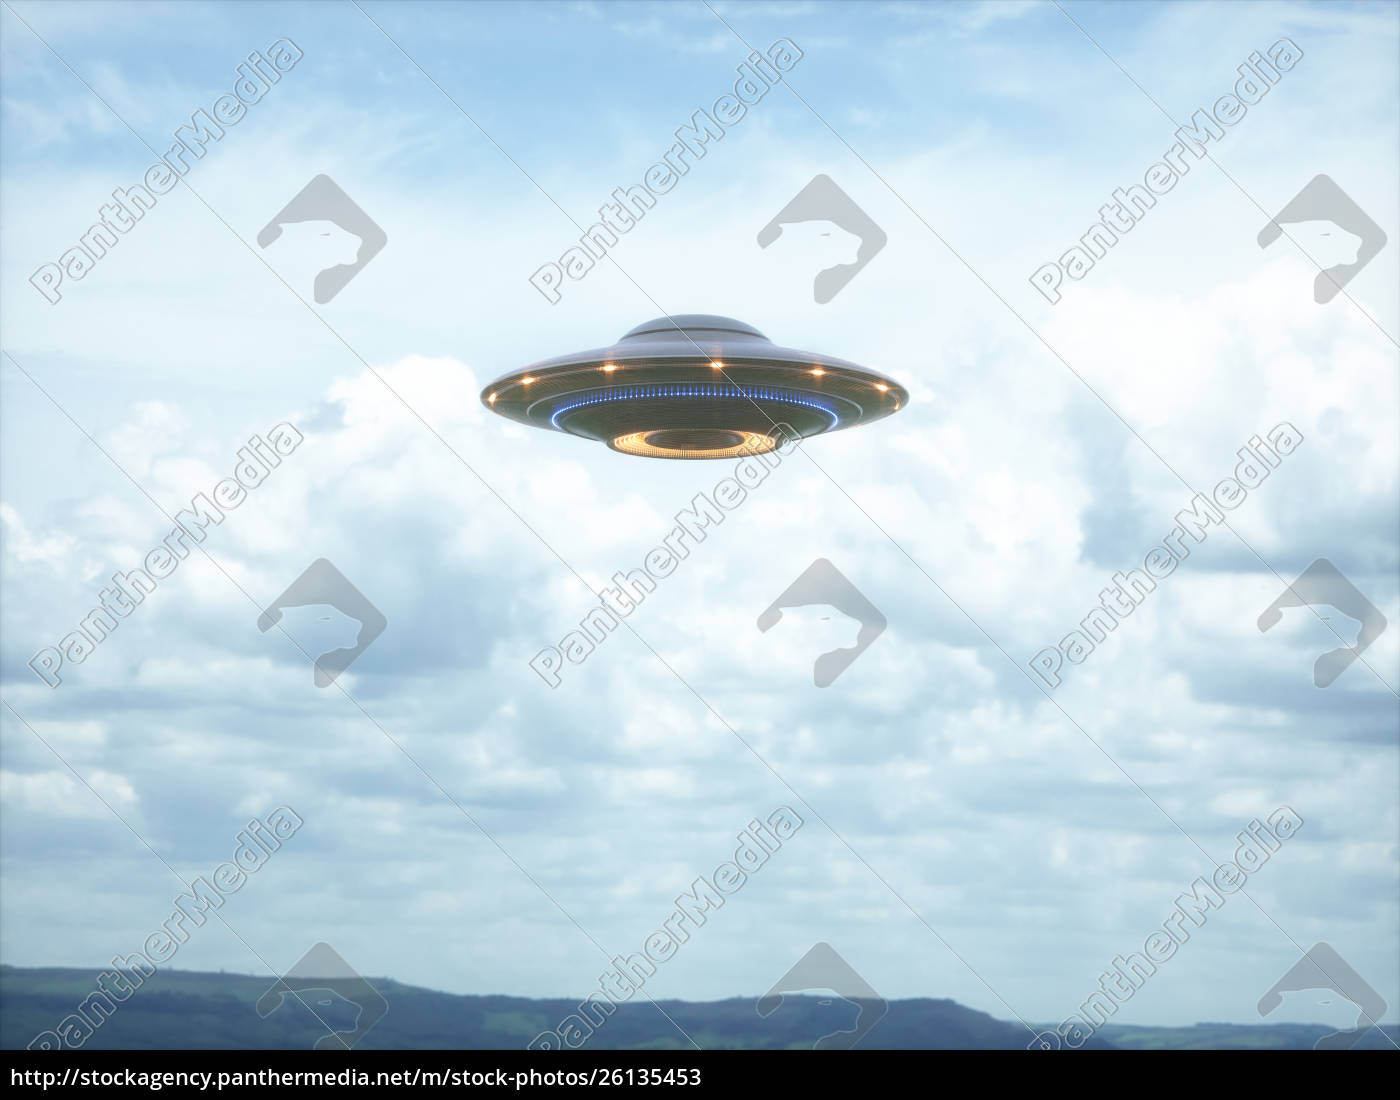 unidentified, flying, object, clipping, path - 26135453